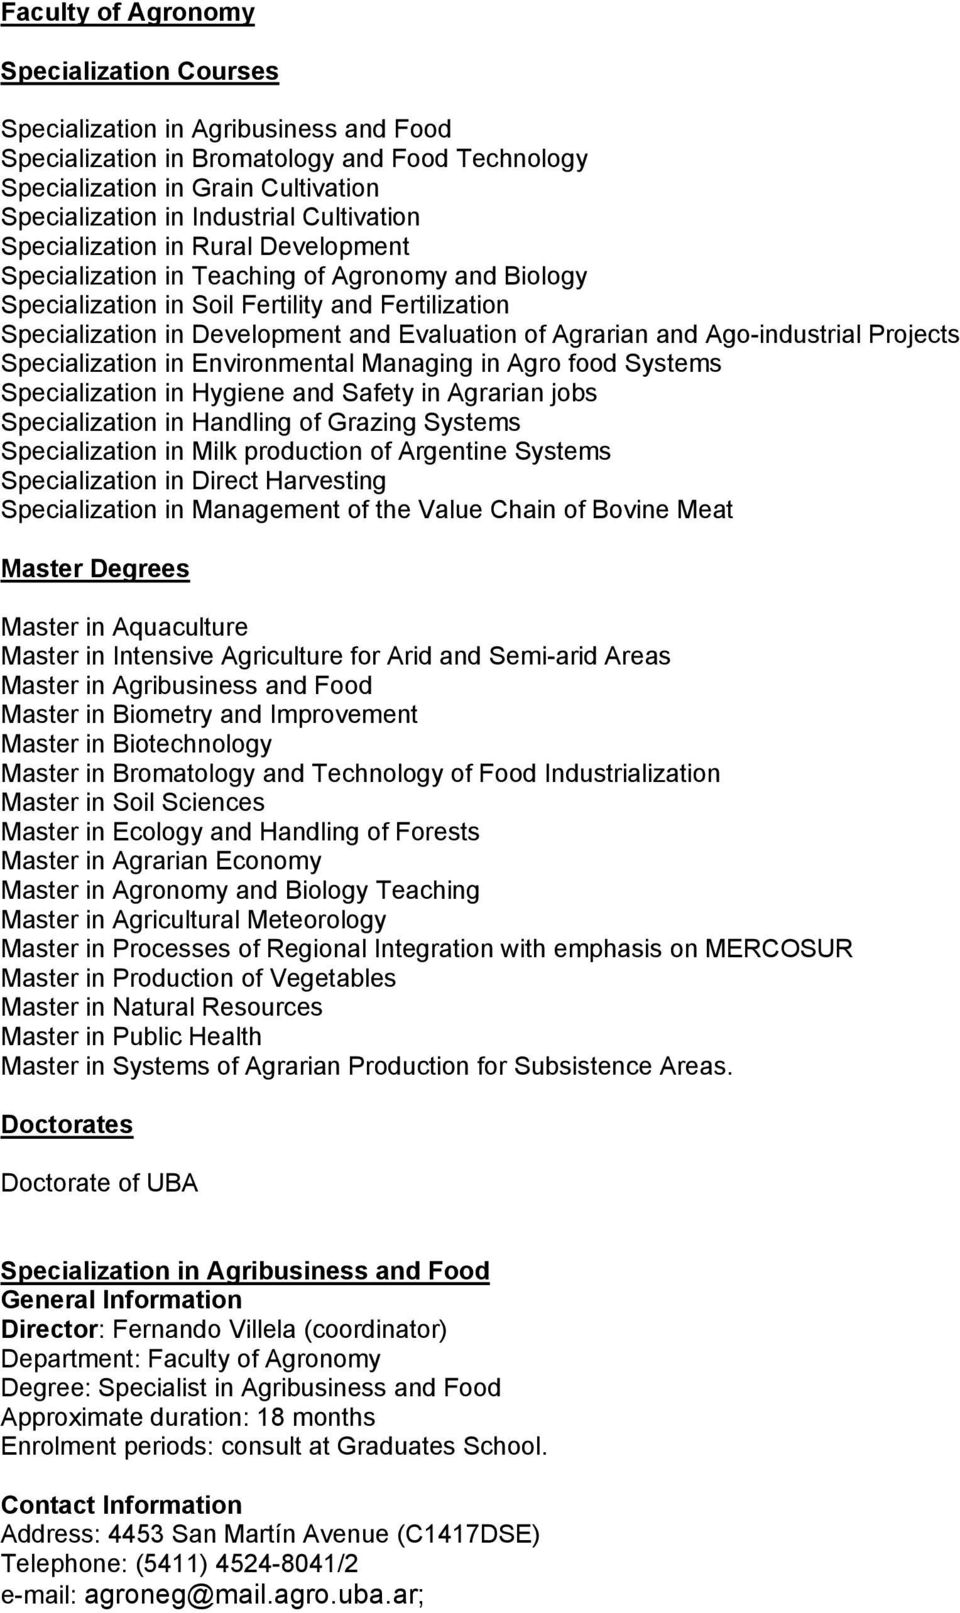 Agrarian and Ago-industrial Projects Specialization in Environmental Managing in Agro food Systems Specialization in Hygiene and Safety in Agrarian jobs Specialization in Handling of Grazing Systems